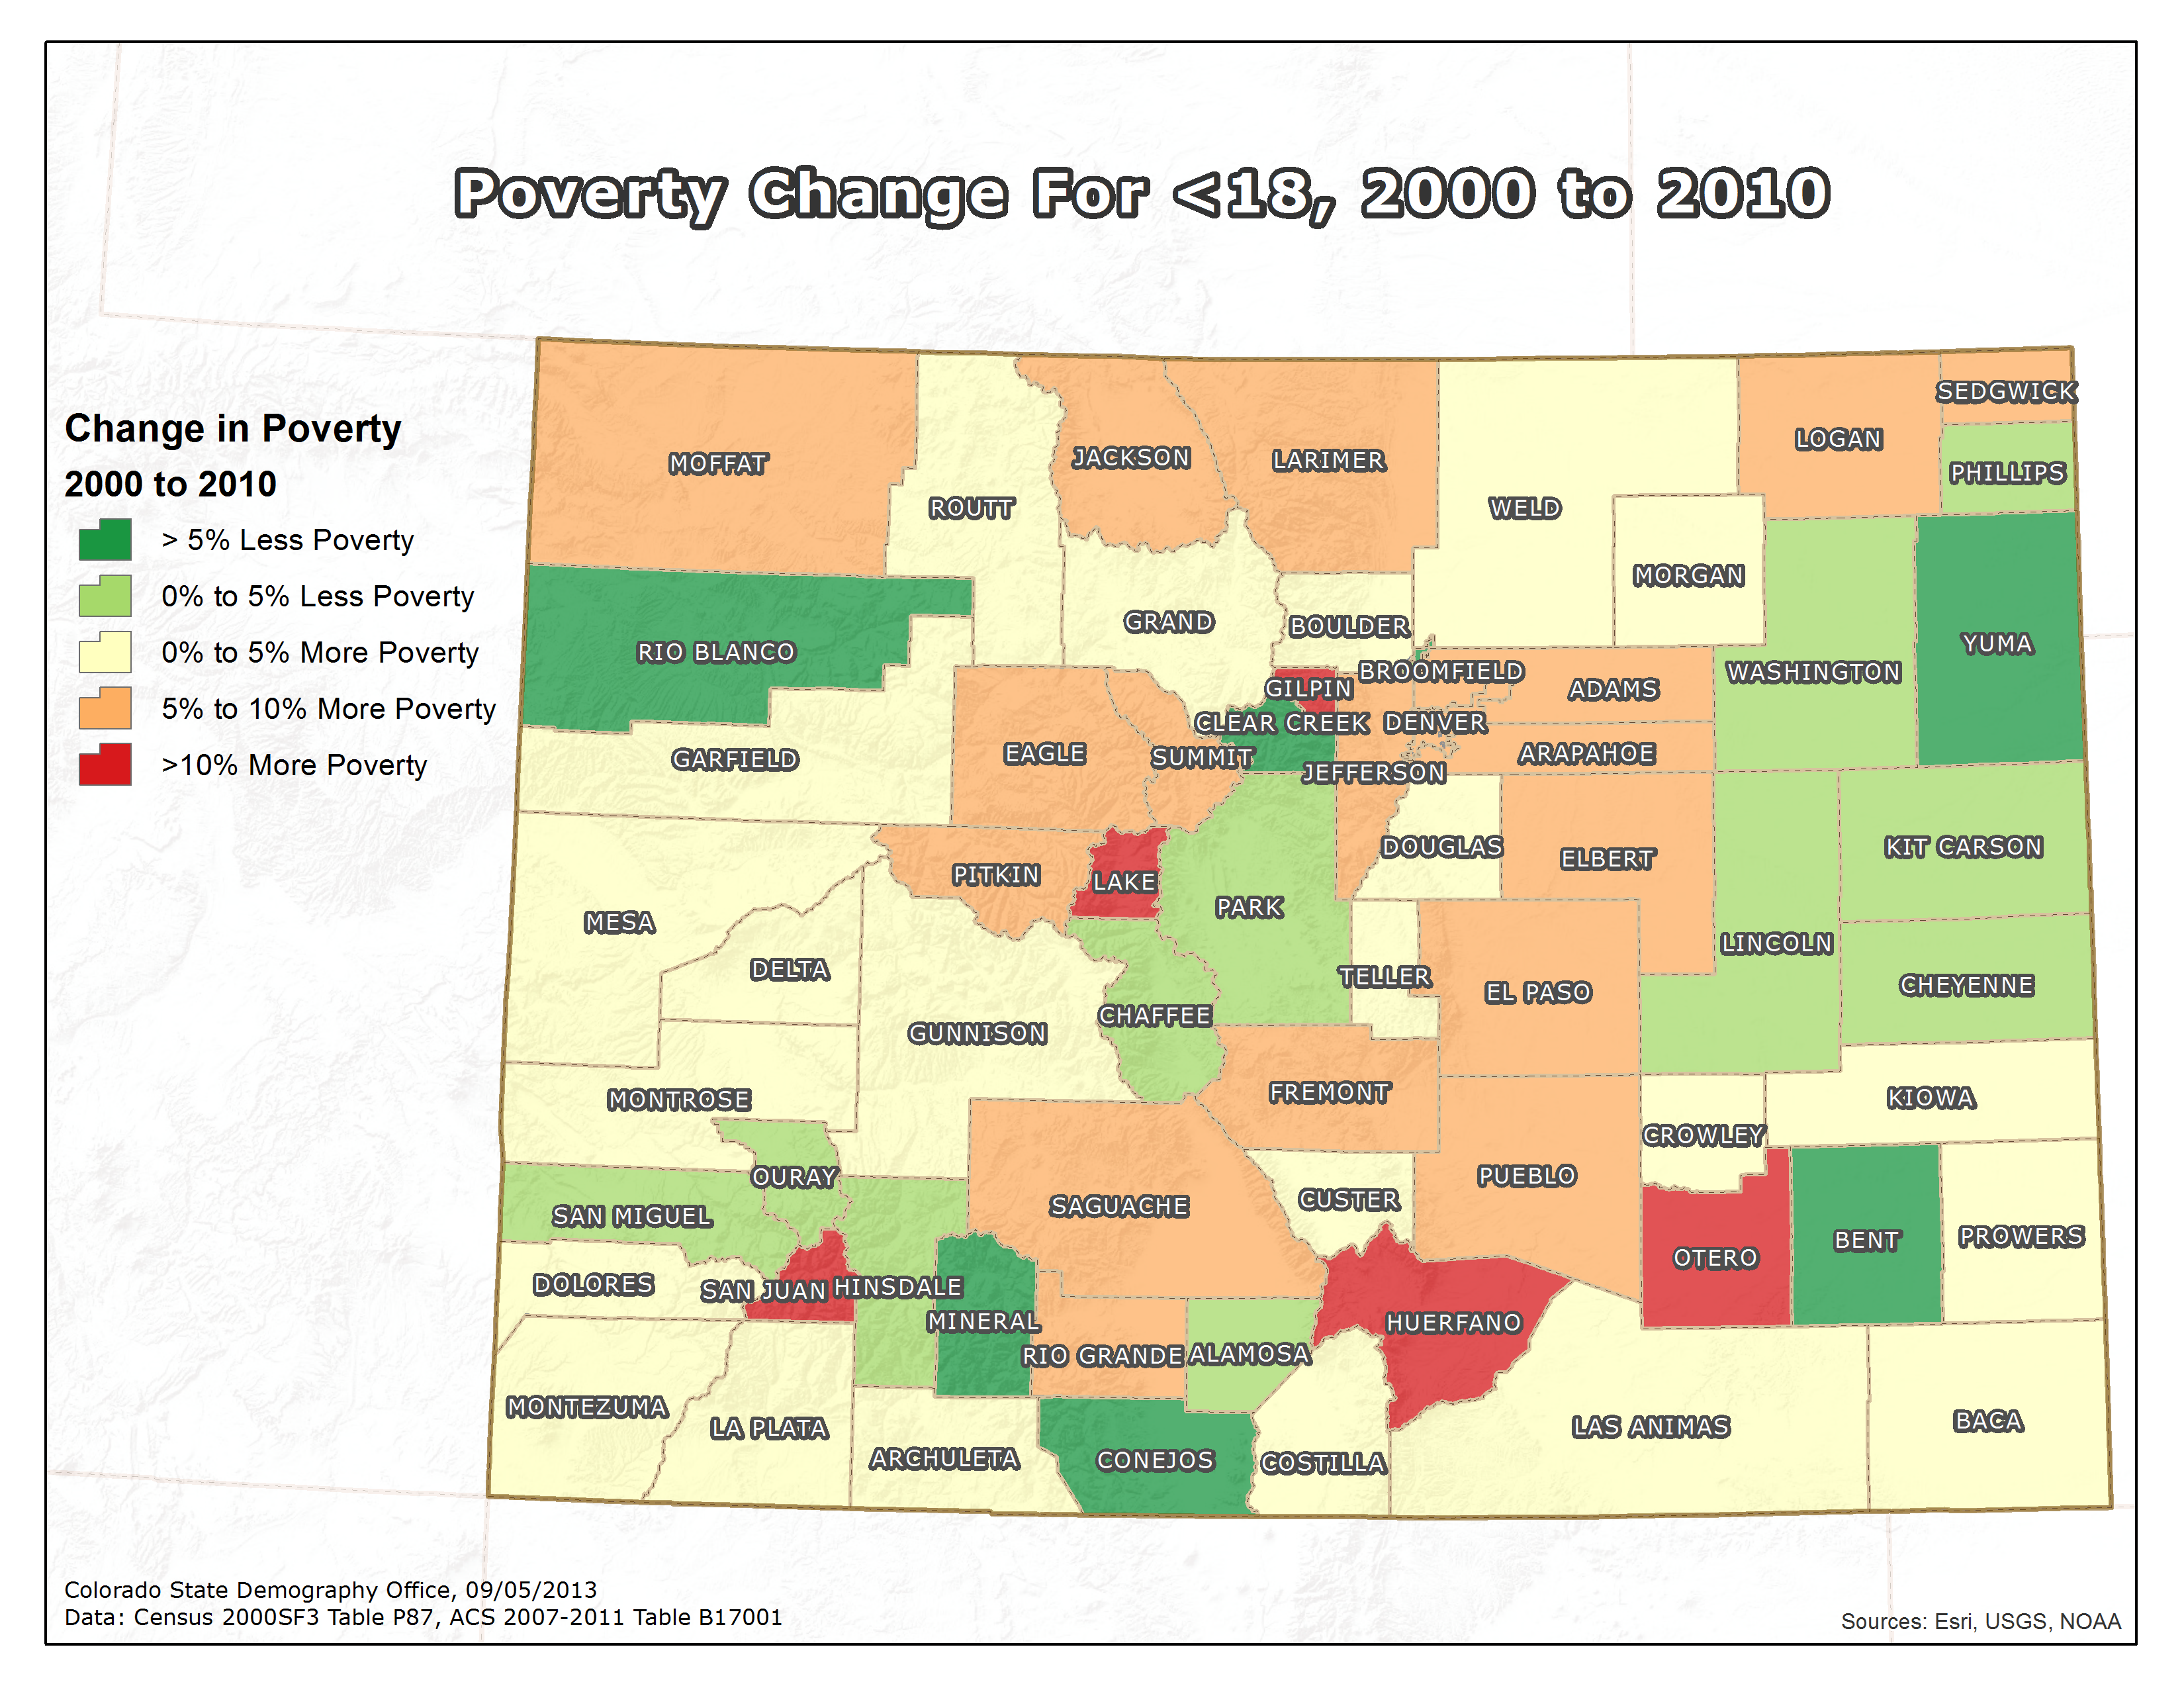 State Demography Office on